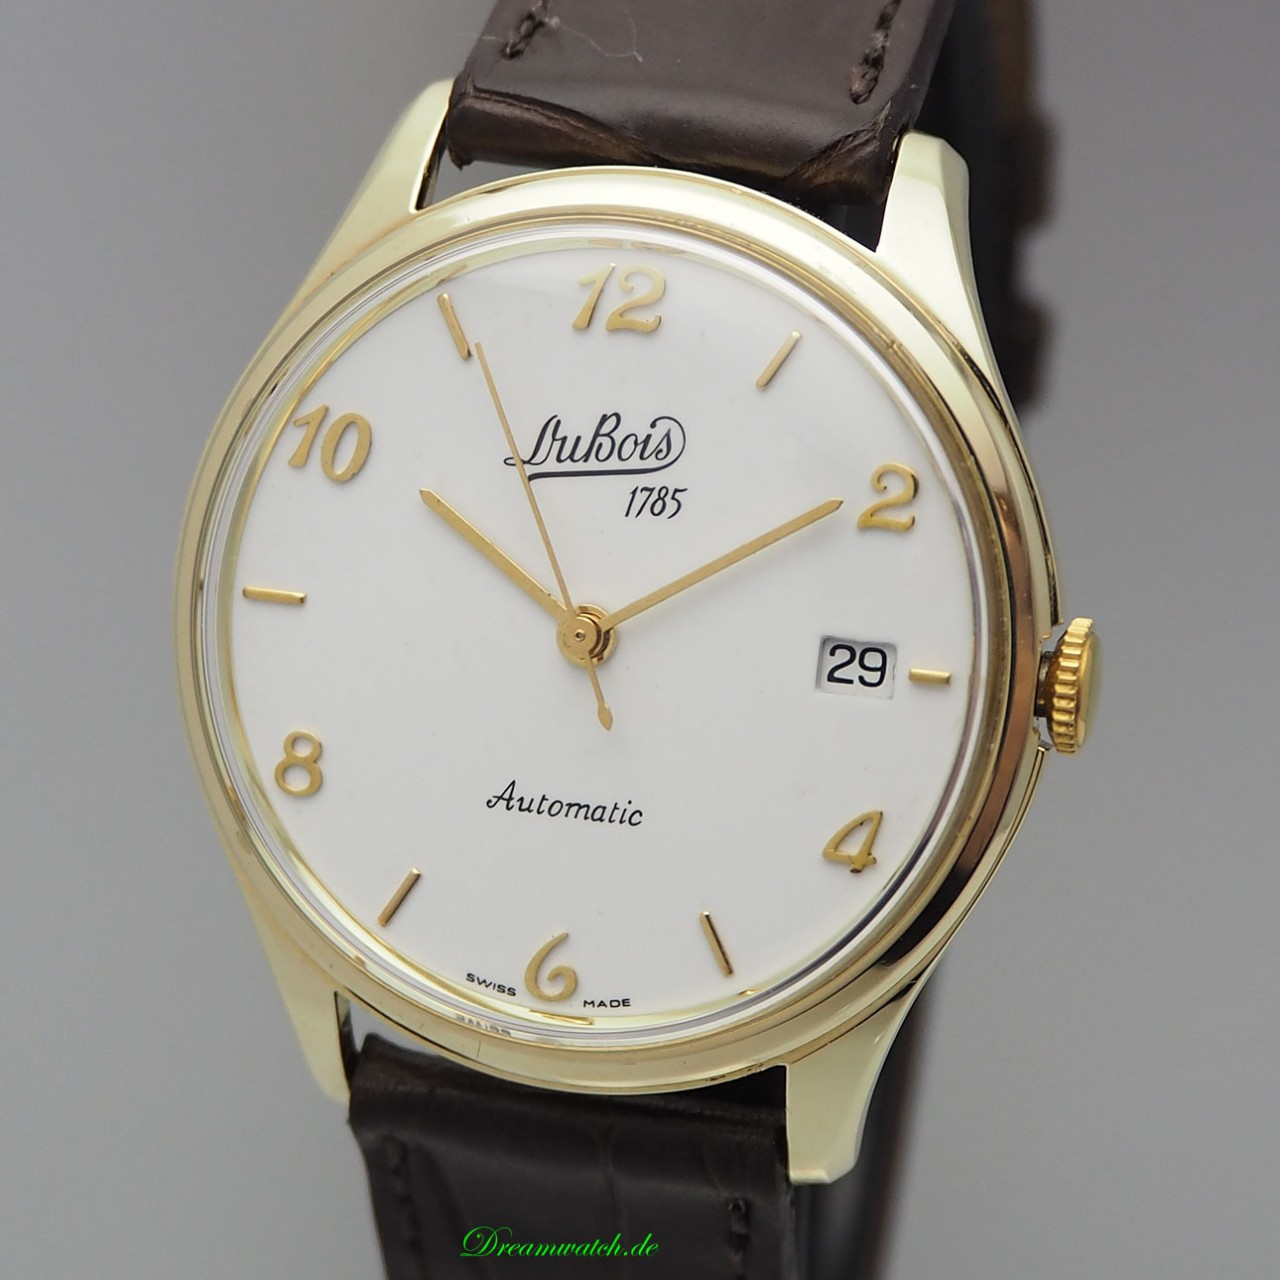 Dubois & Fils Automatik Date Gold 14k/ 585, Calatrava Dress watch very rare